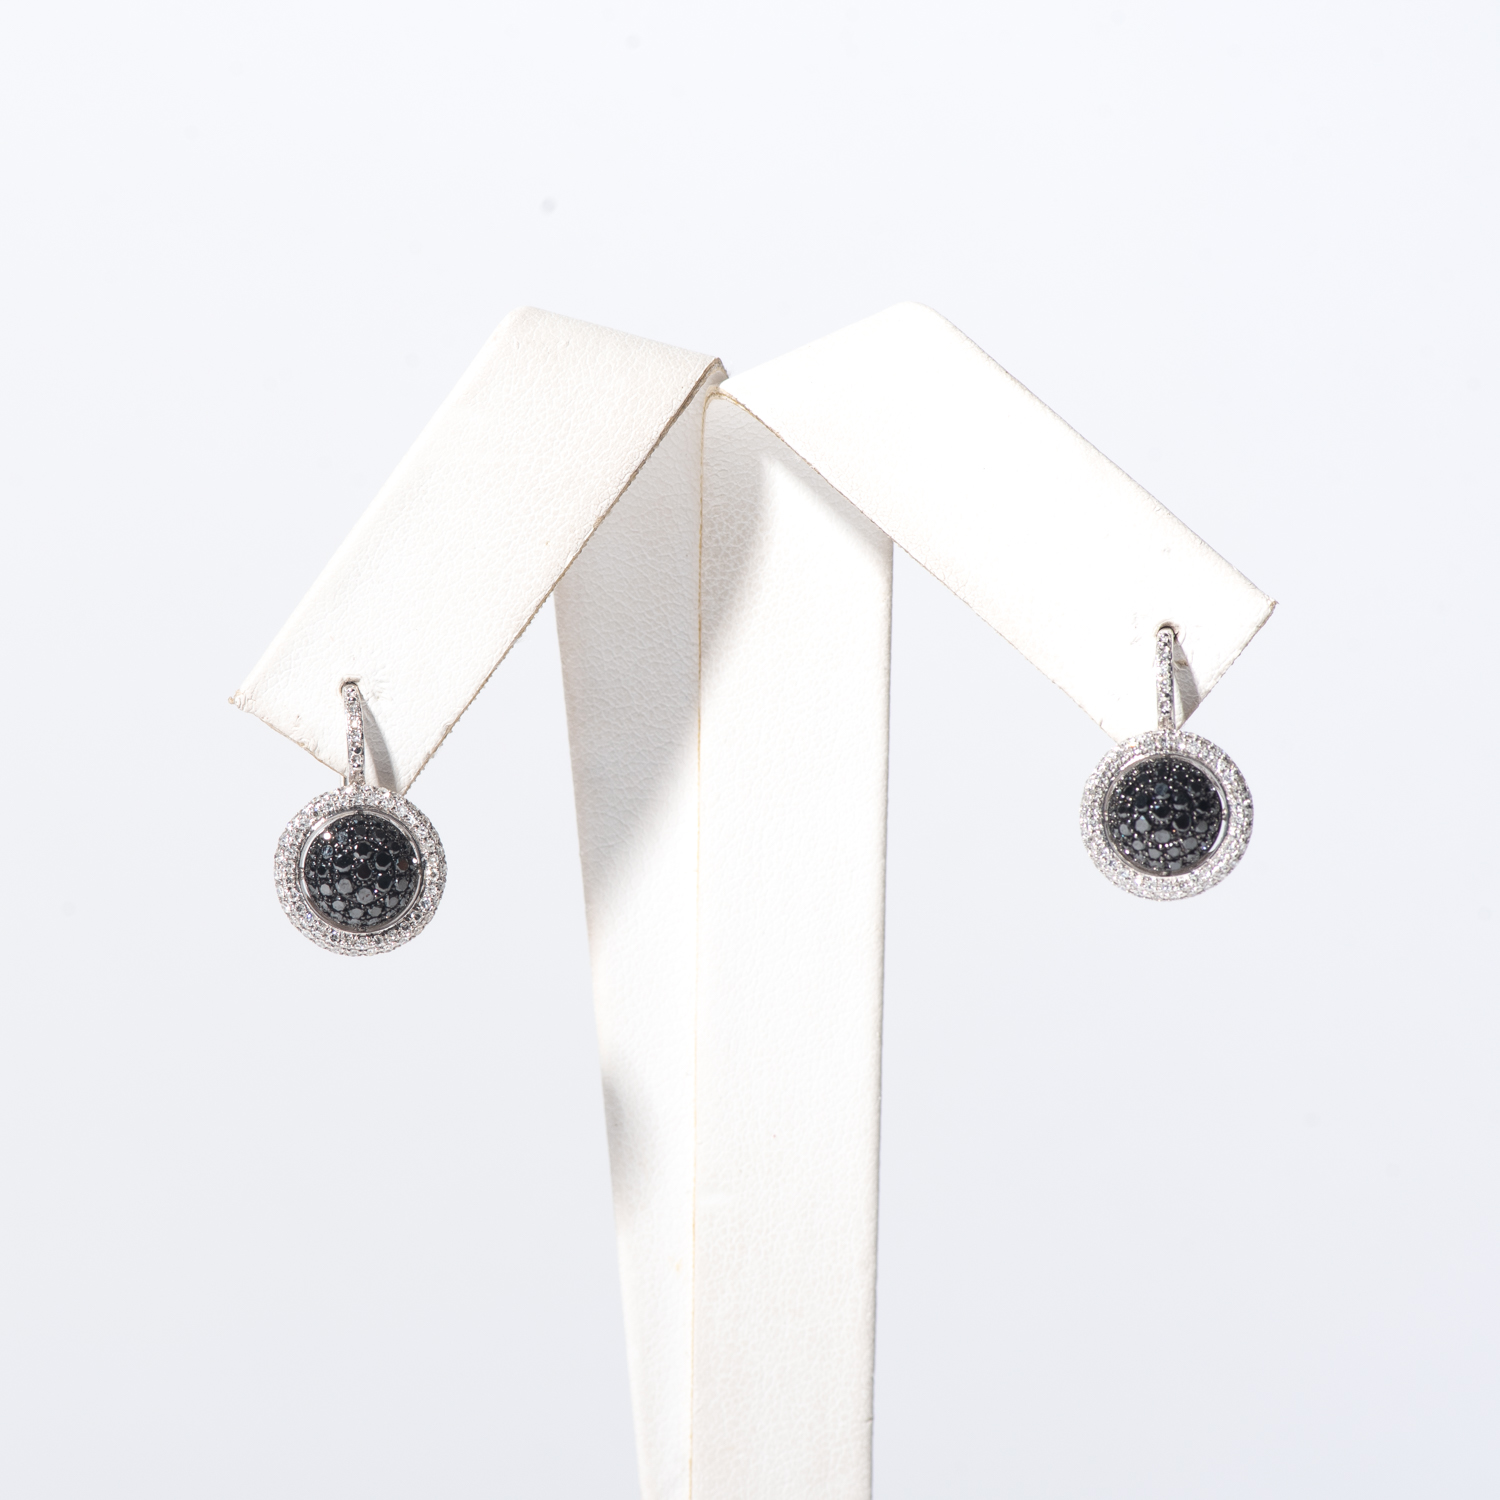 Design Seventeen. - This is dummy text to describe the earrings.